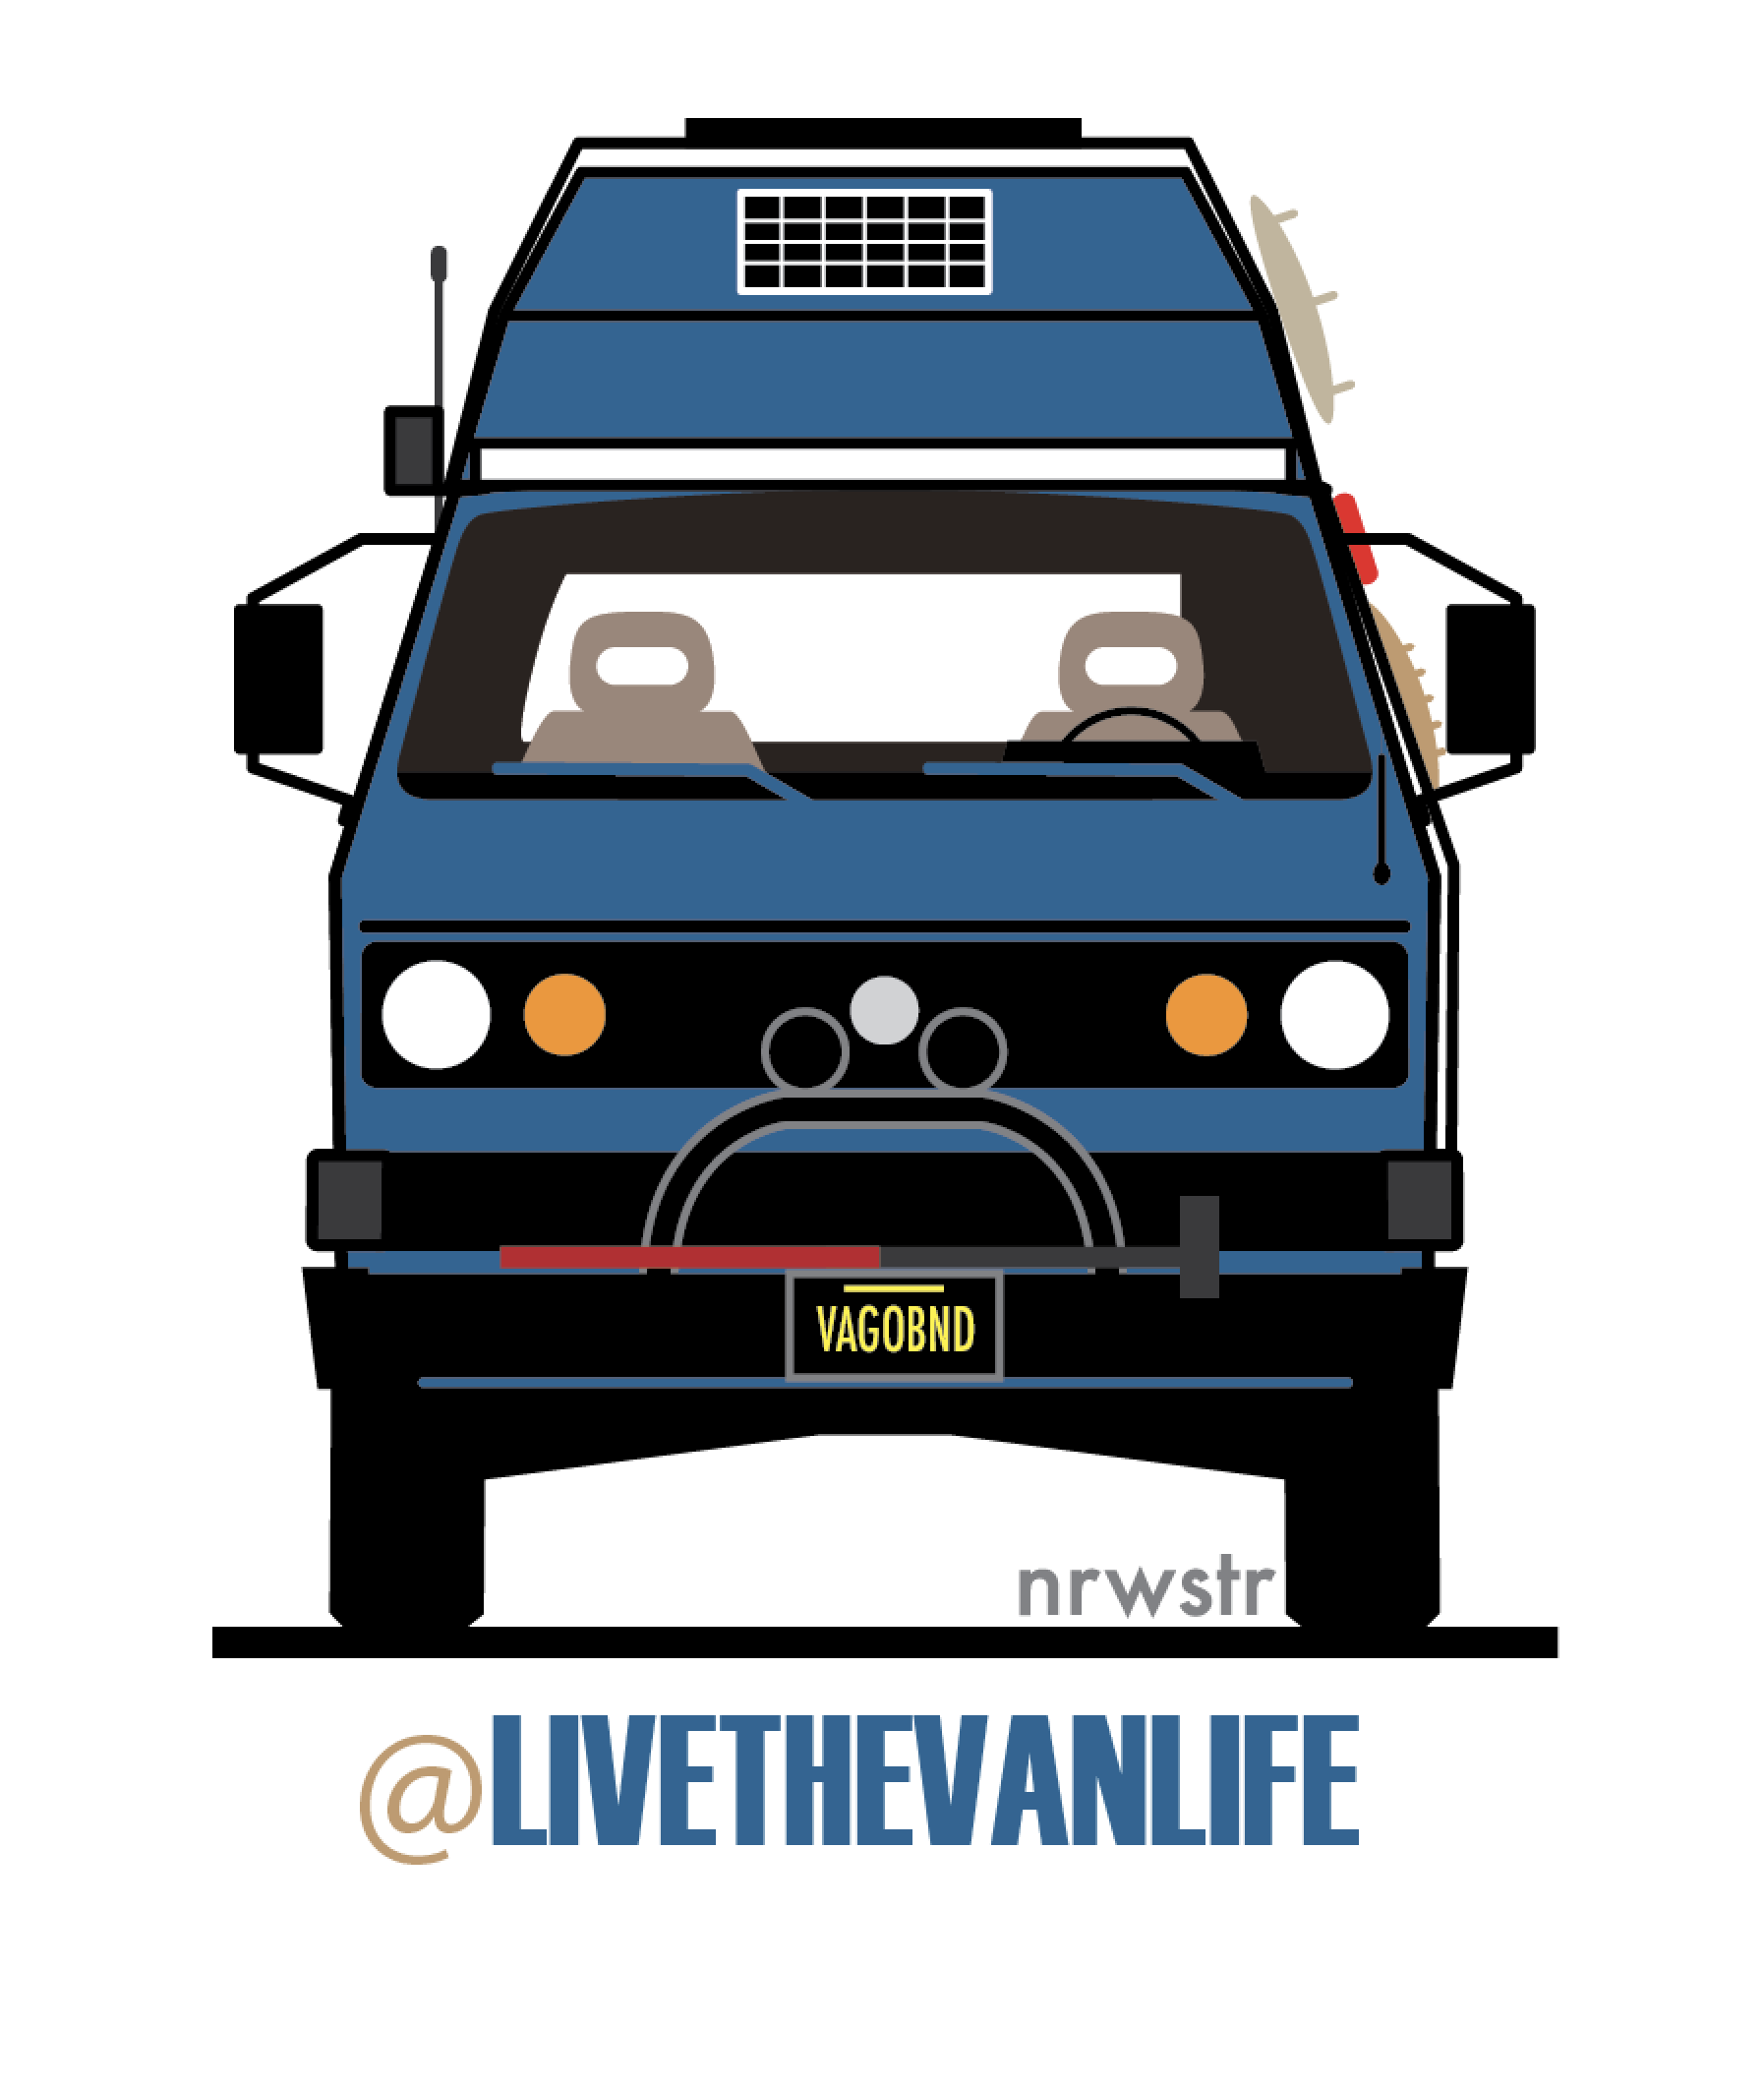 livethevanlife front view.png